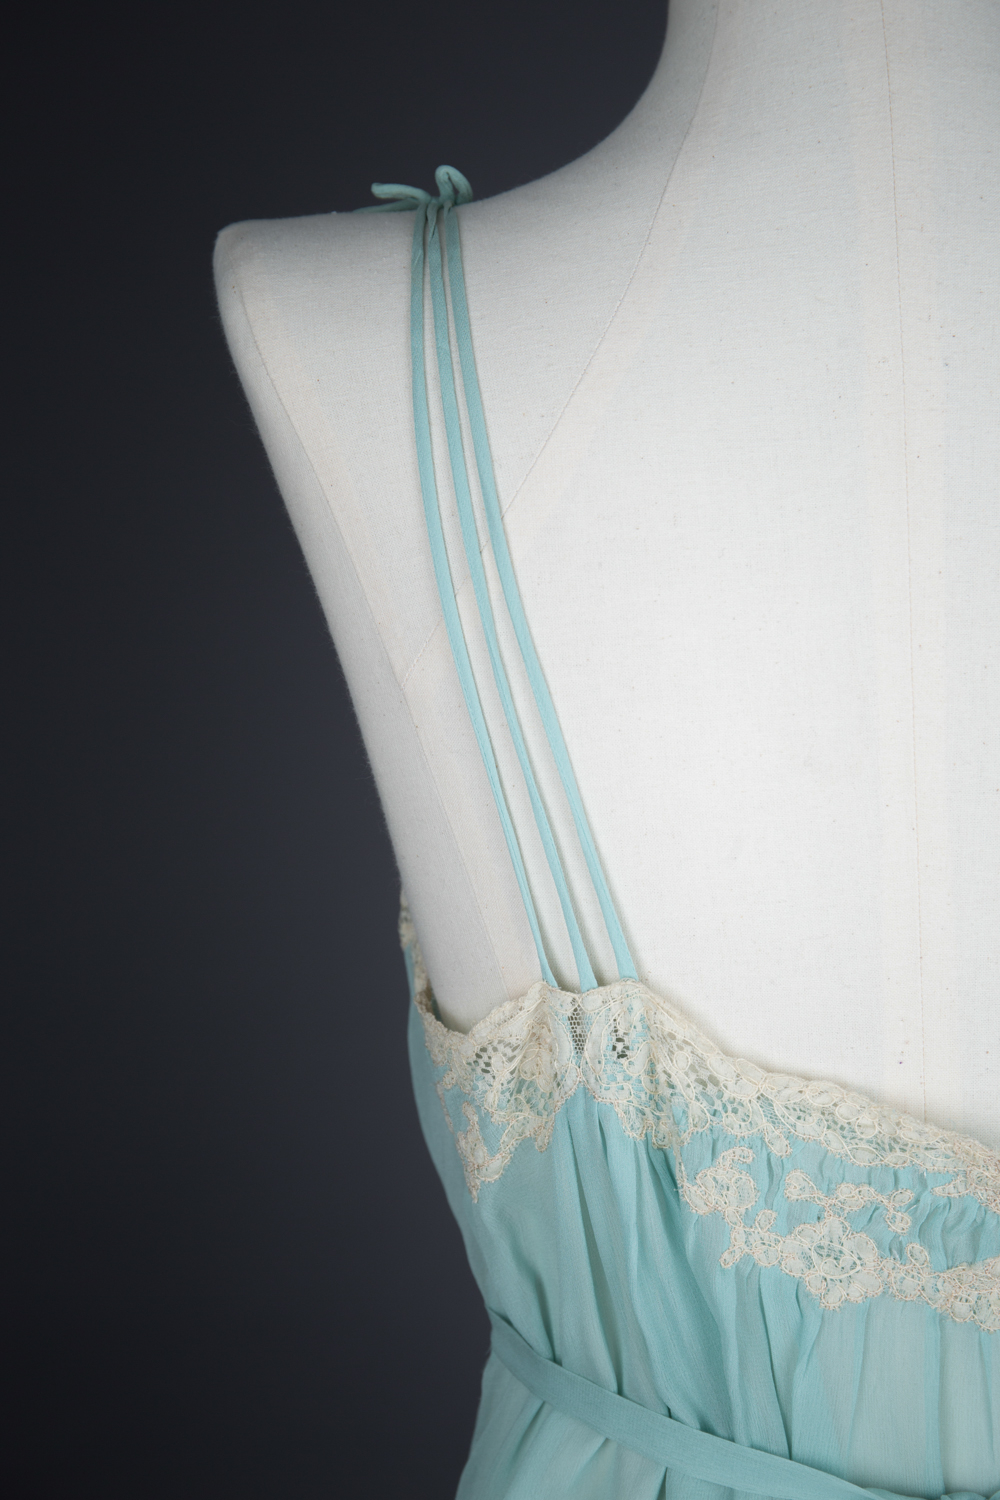 Pleated Silk Georgette Gown With Lace Appliqué by Juel Park, c. 1940s, USA. The Underpinnings Museum. Photography by Tigz Rice.